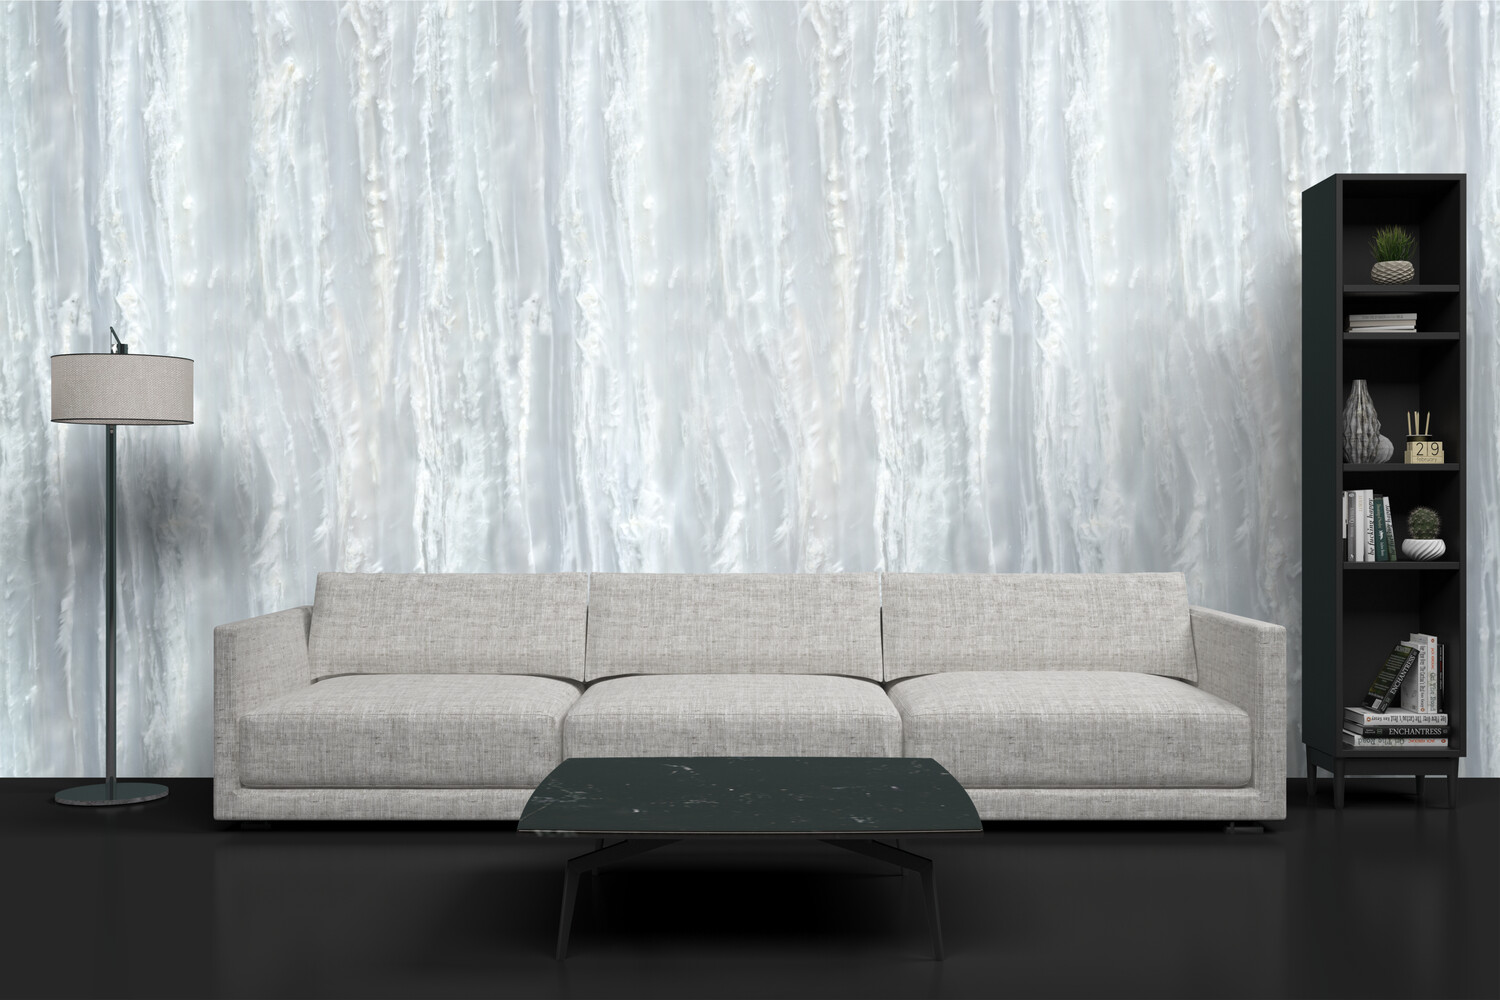 WHITE CEMENT | Vinyl Wall Wrap for Any Room | Removable Vinyl Wallpaper